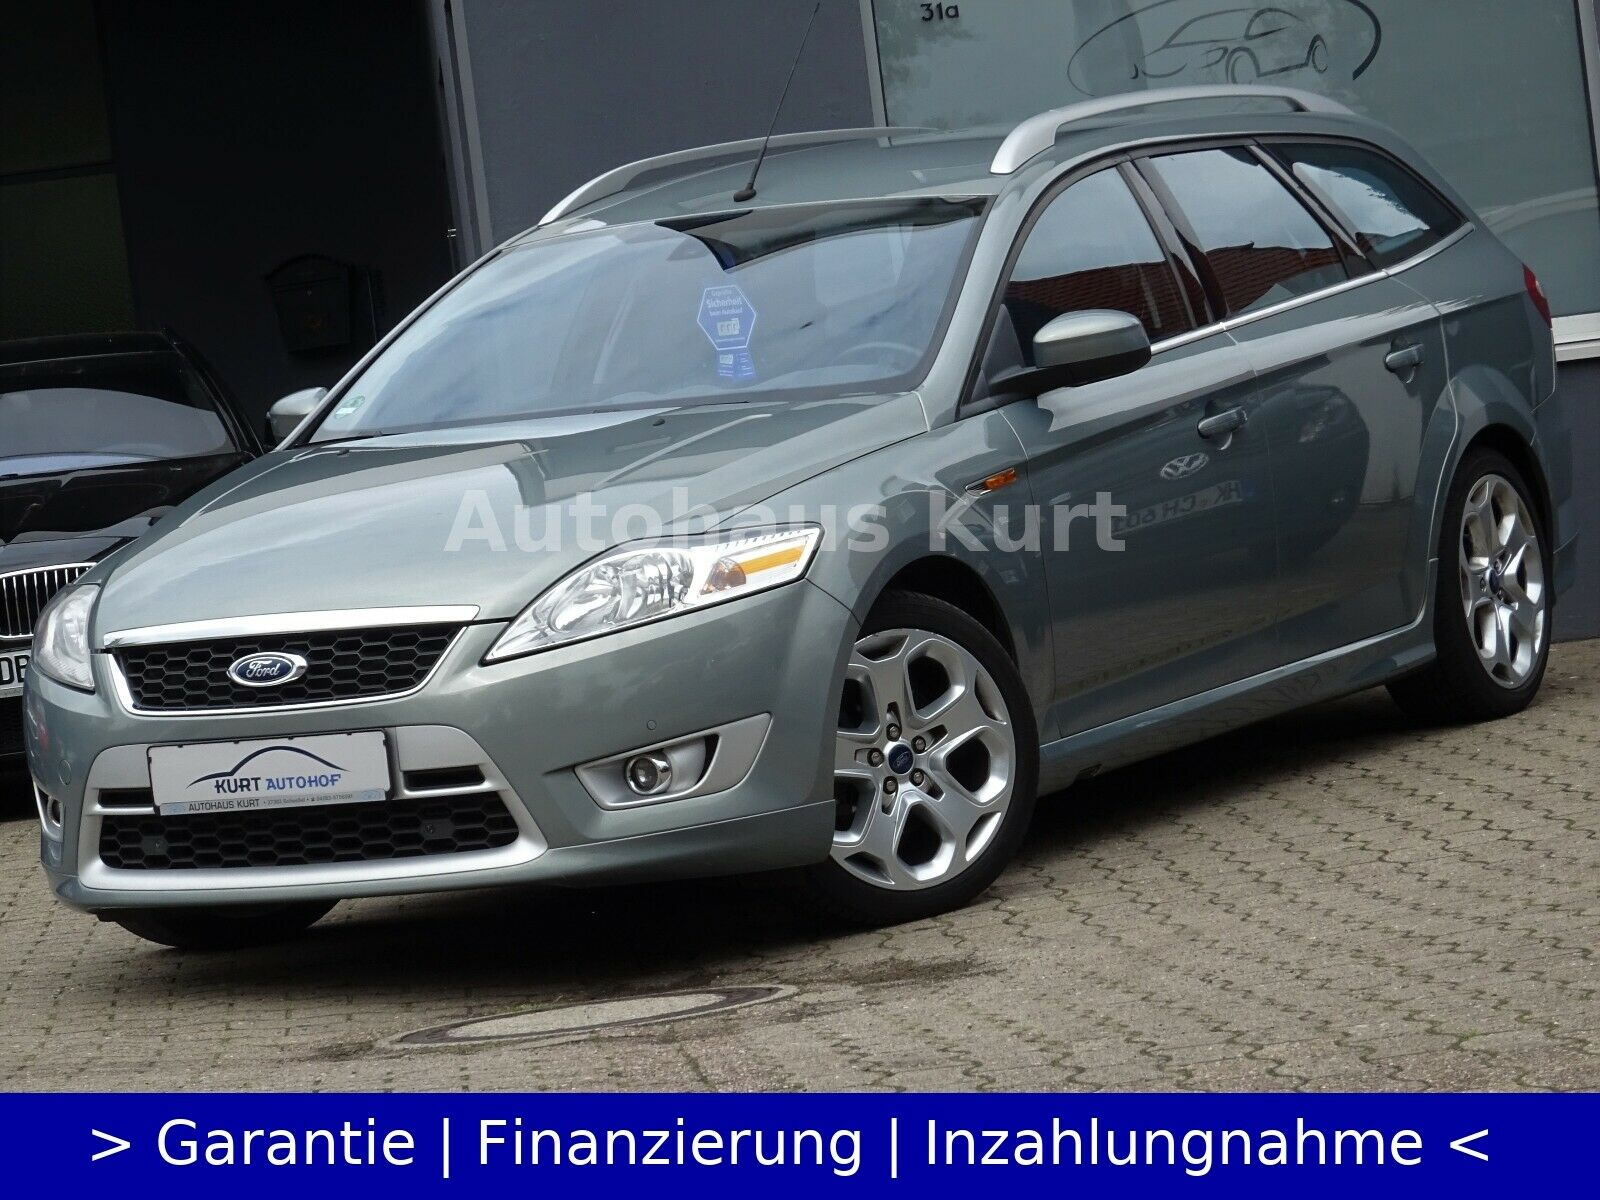 FORD Mondeo 2.2 TDCi Turnier Individual*LEDER*18 LMF*